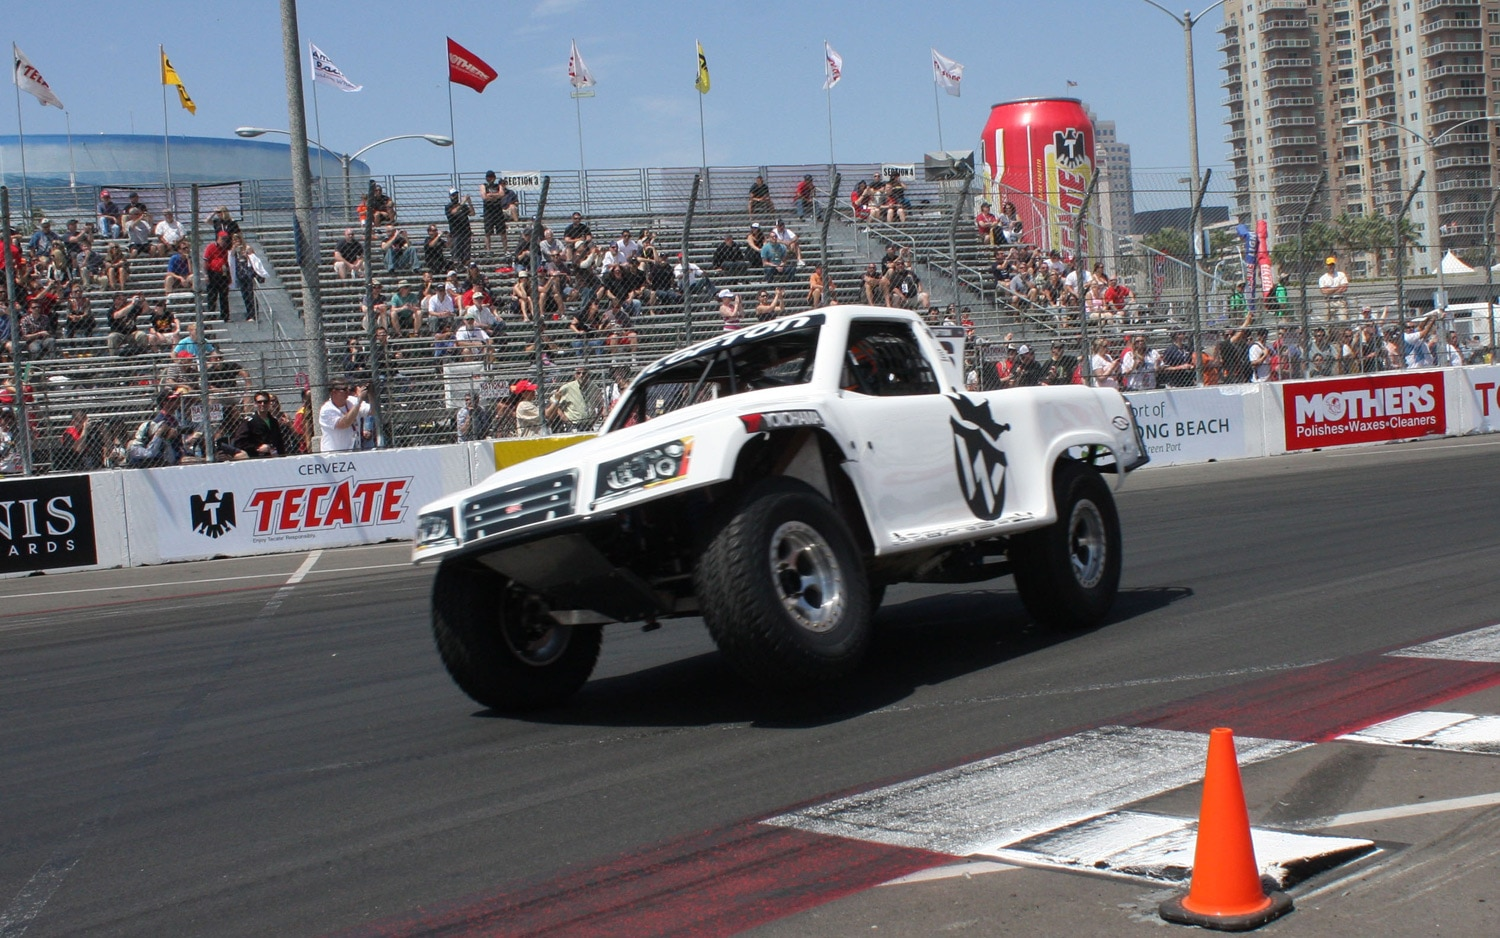 1304OR 11+Robby Gordon SST Stadium Super Trucks 2013 Long Beach Grand Prix Juston Lofton